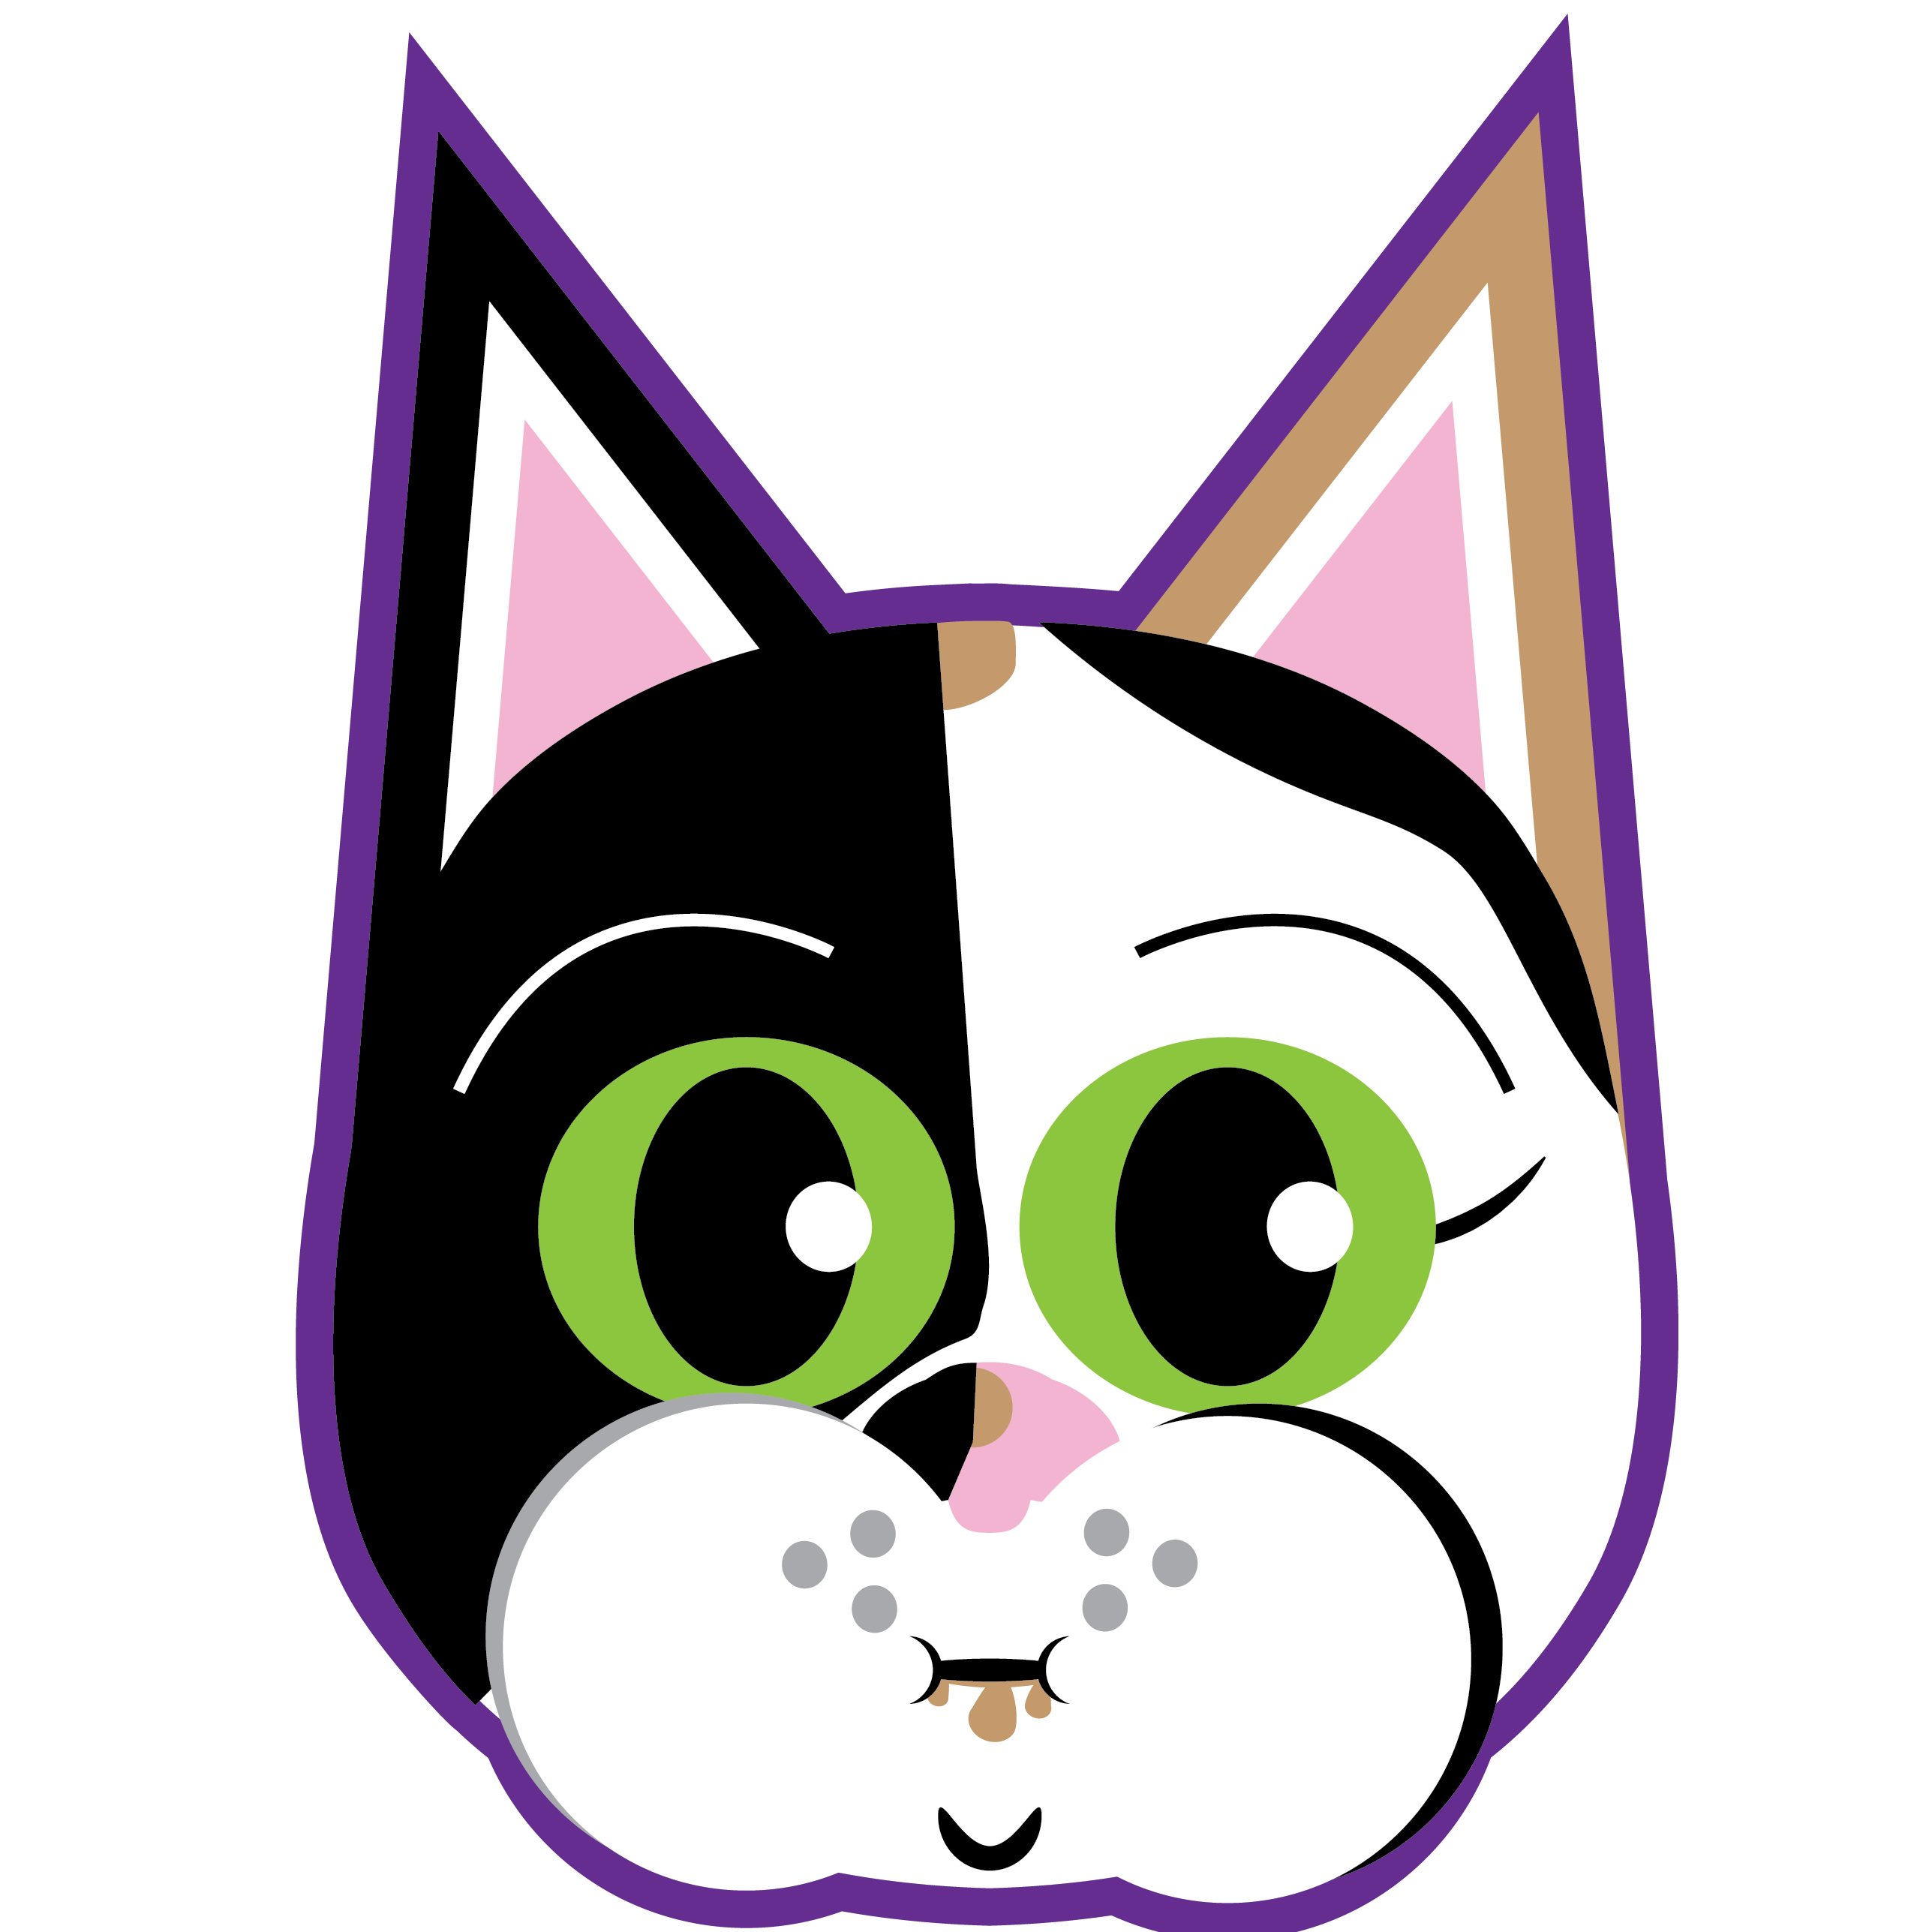 Priscilly Kitty messages sticker-5